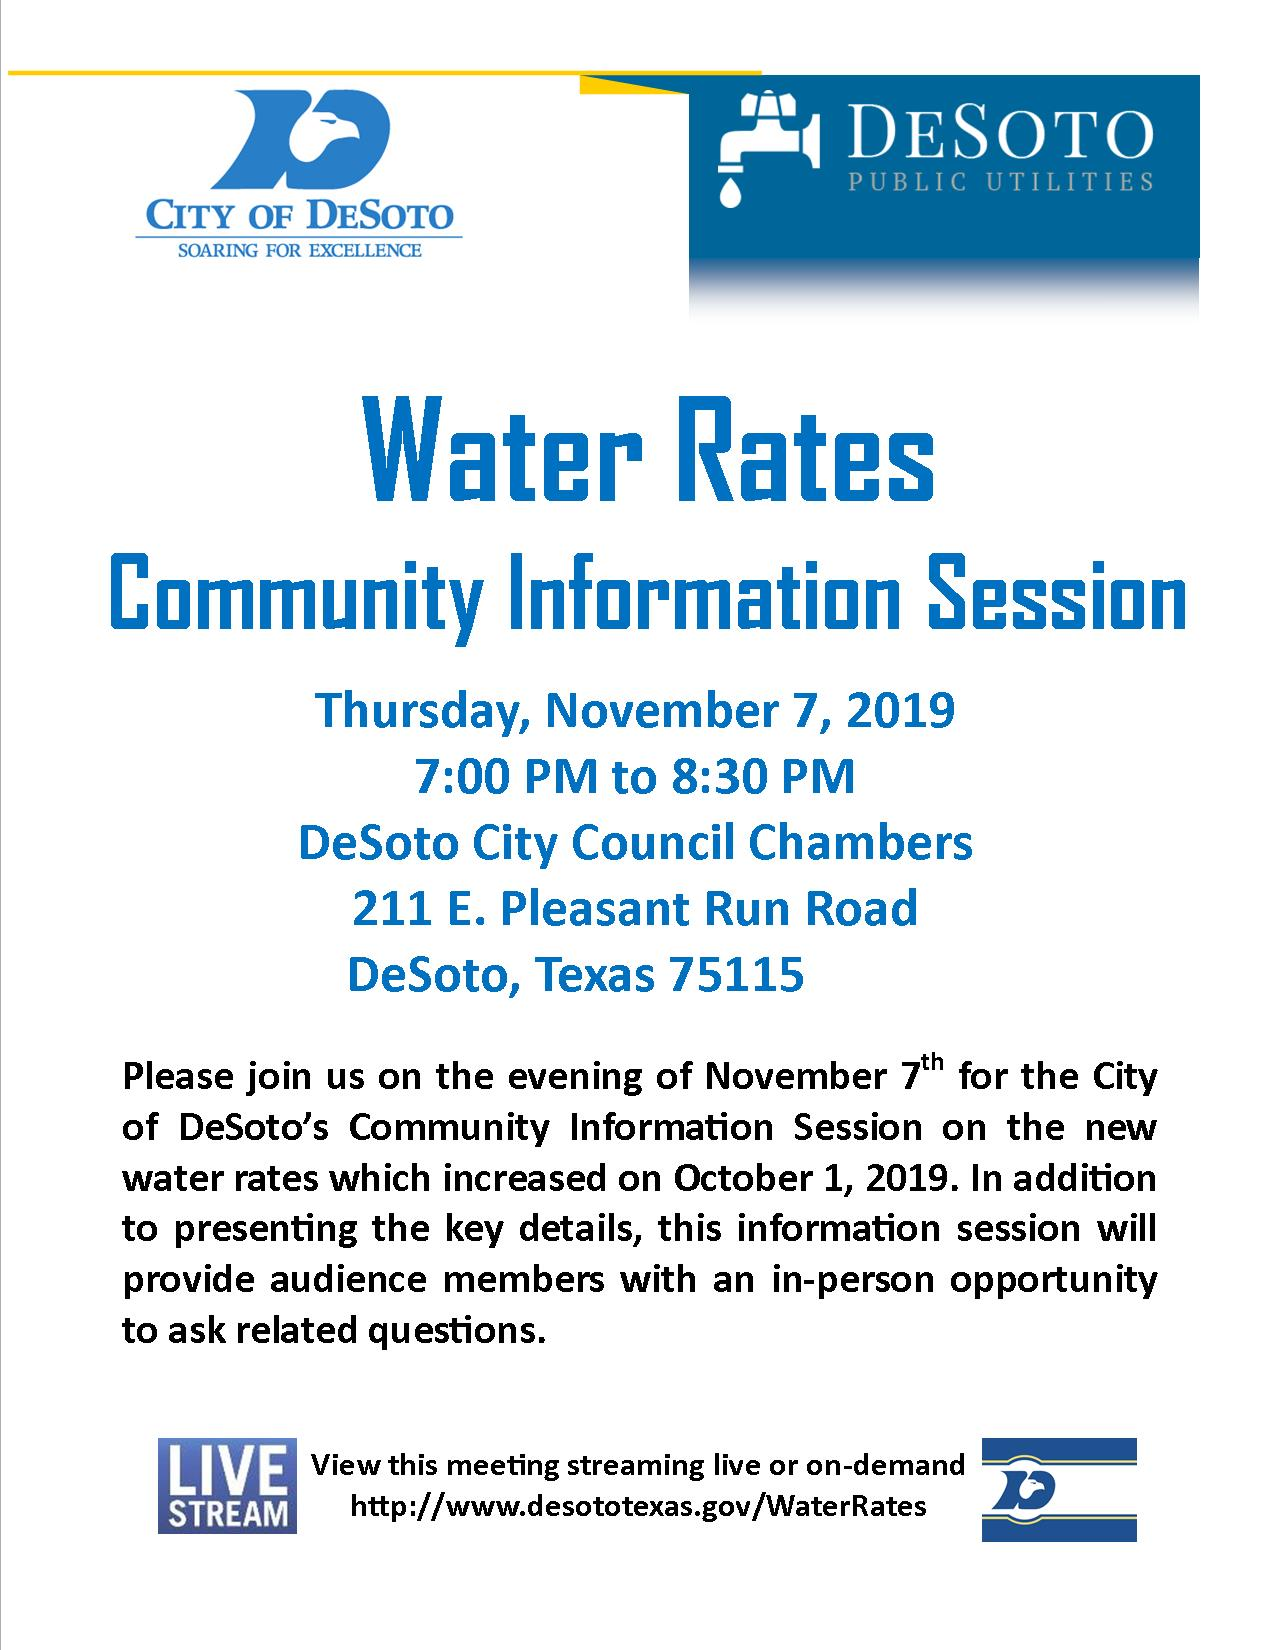 Flyer for DeSoto's November 7th Water Rates Meeting